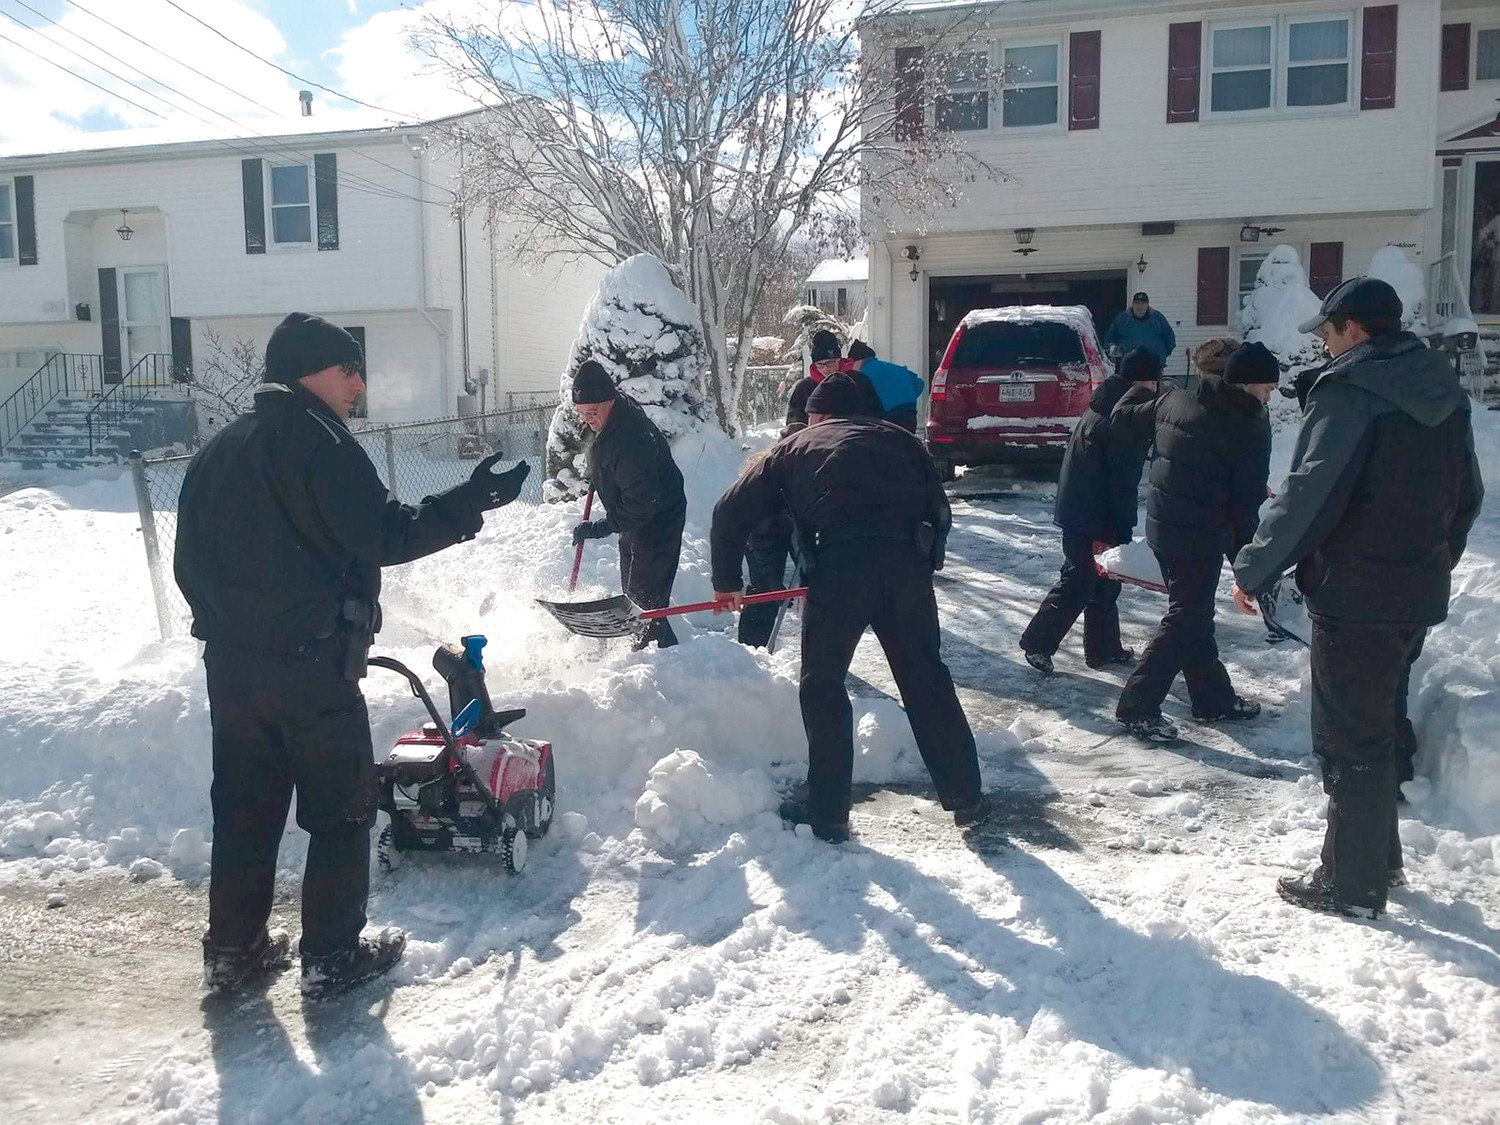 PROUD PATROL: Members of the Johnston Police Explorers Post 405 spent much of Saturday shoveling snow at the homes of elderly and handicapped residents despite temperatures that Major Thomas H. Dolan – the group's coordinator – said dipped below zero due to the wind chill factor. (Submitted photo)